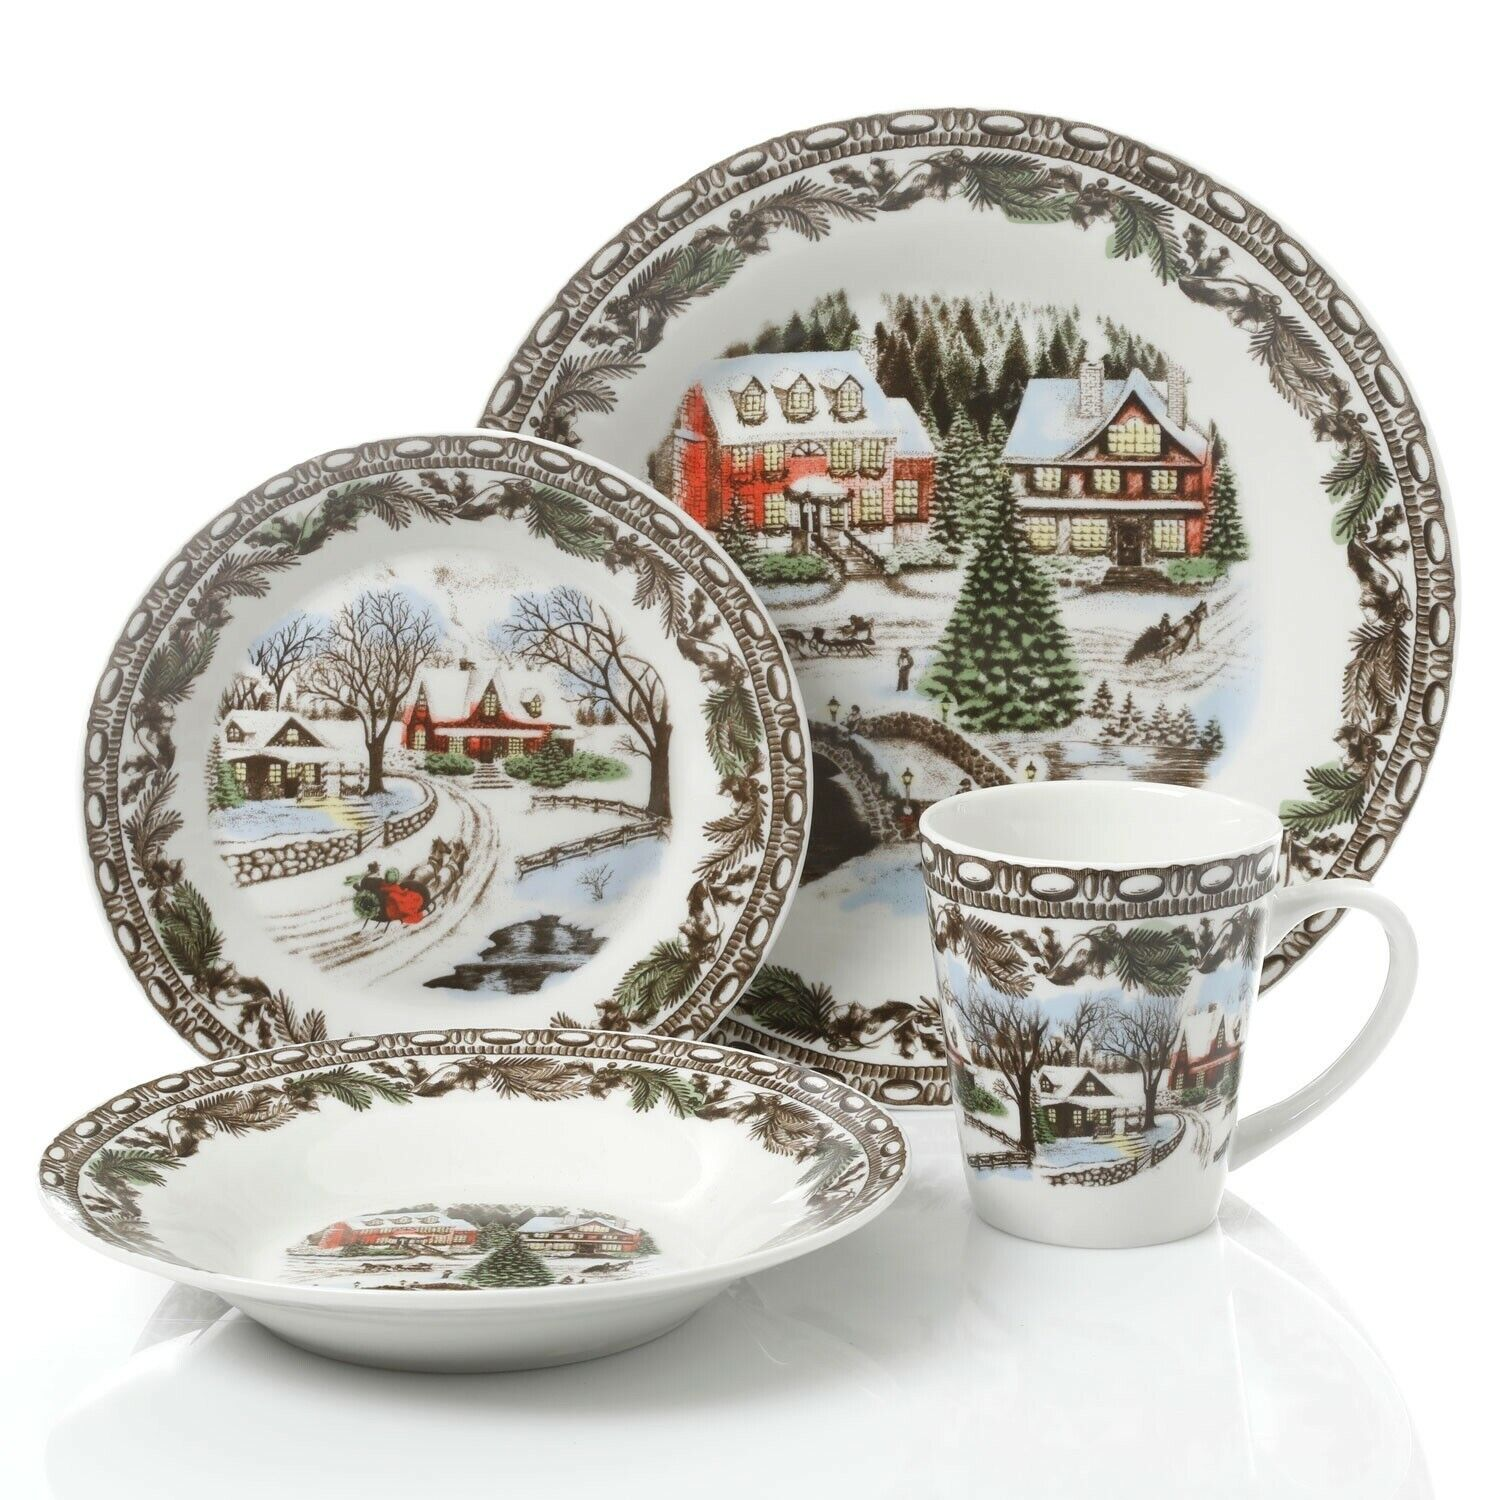 Gibson Home Christmas Holiday Winter Scenery Toile 16 Piece